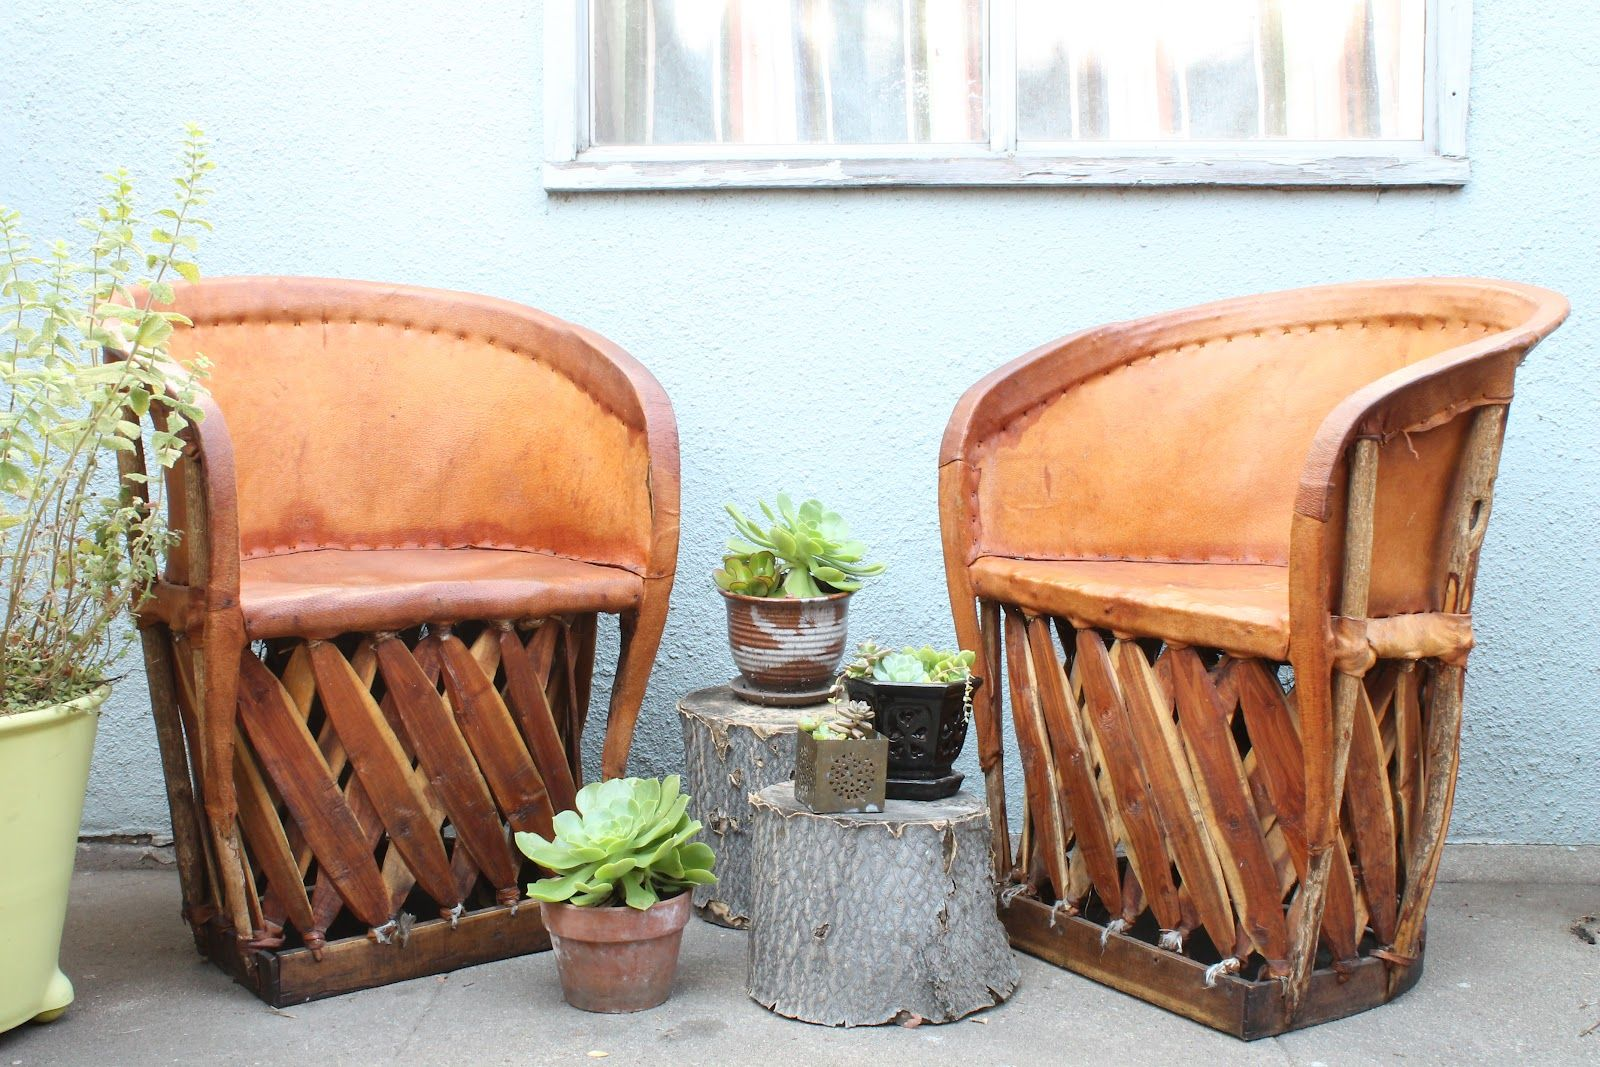 Mexican Equipale Chairs Sold On Craigslist Mexican Furniture